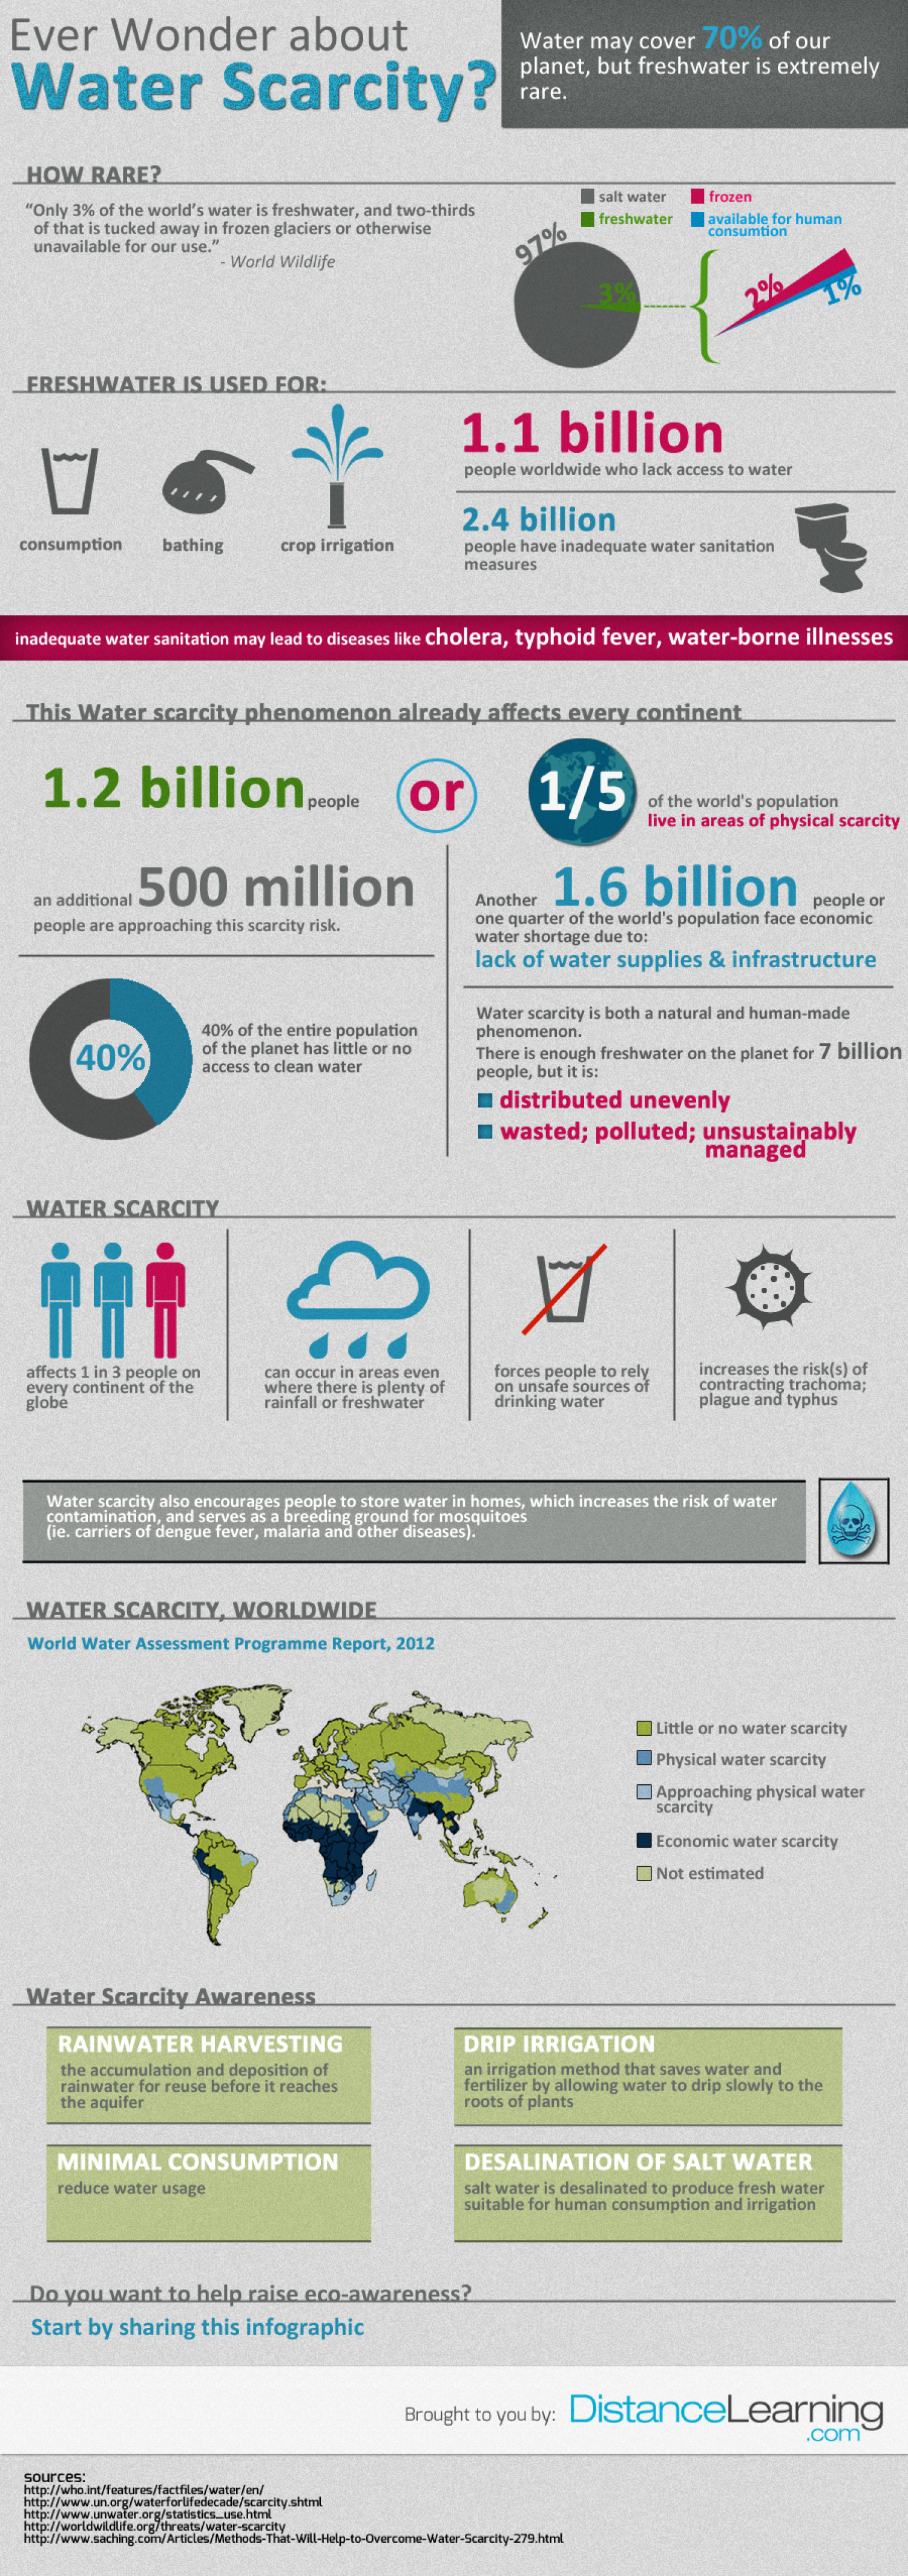 Ever Wonder about Water Scarcity? Infographic